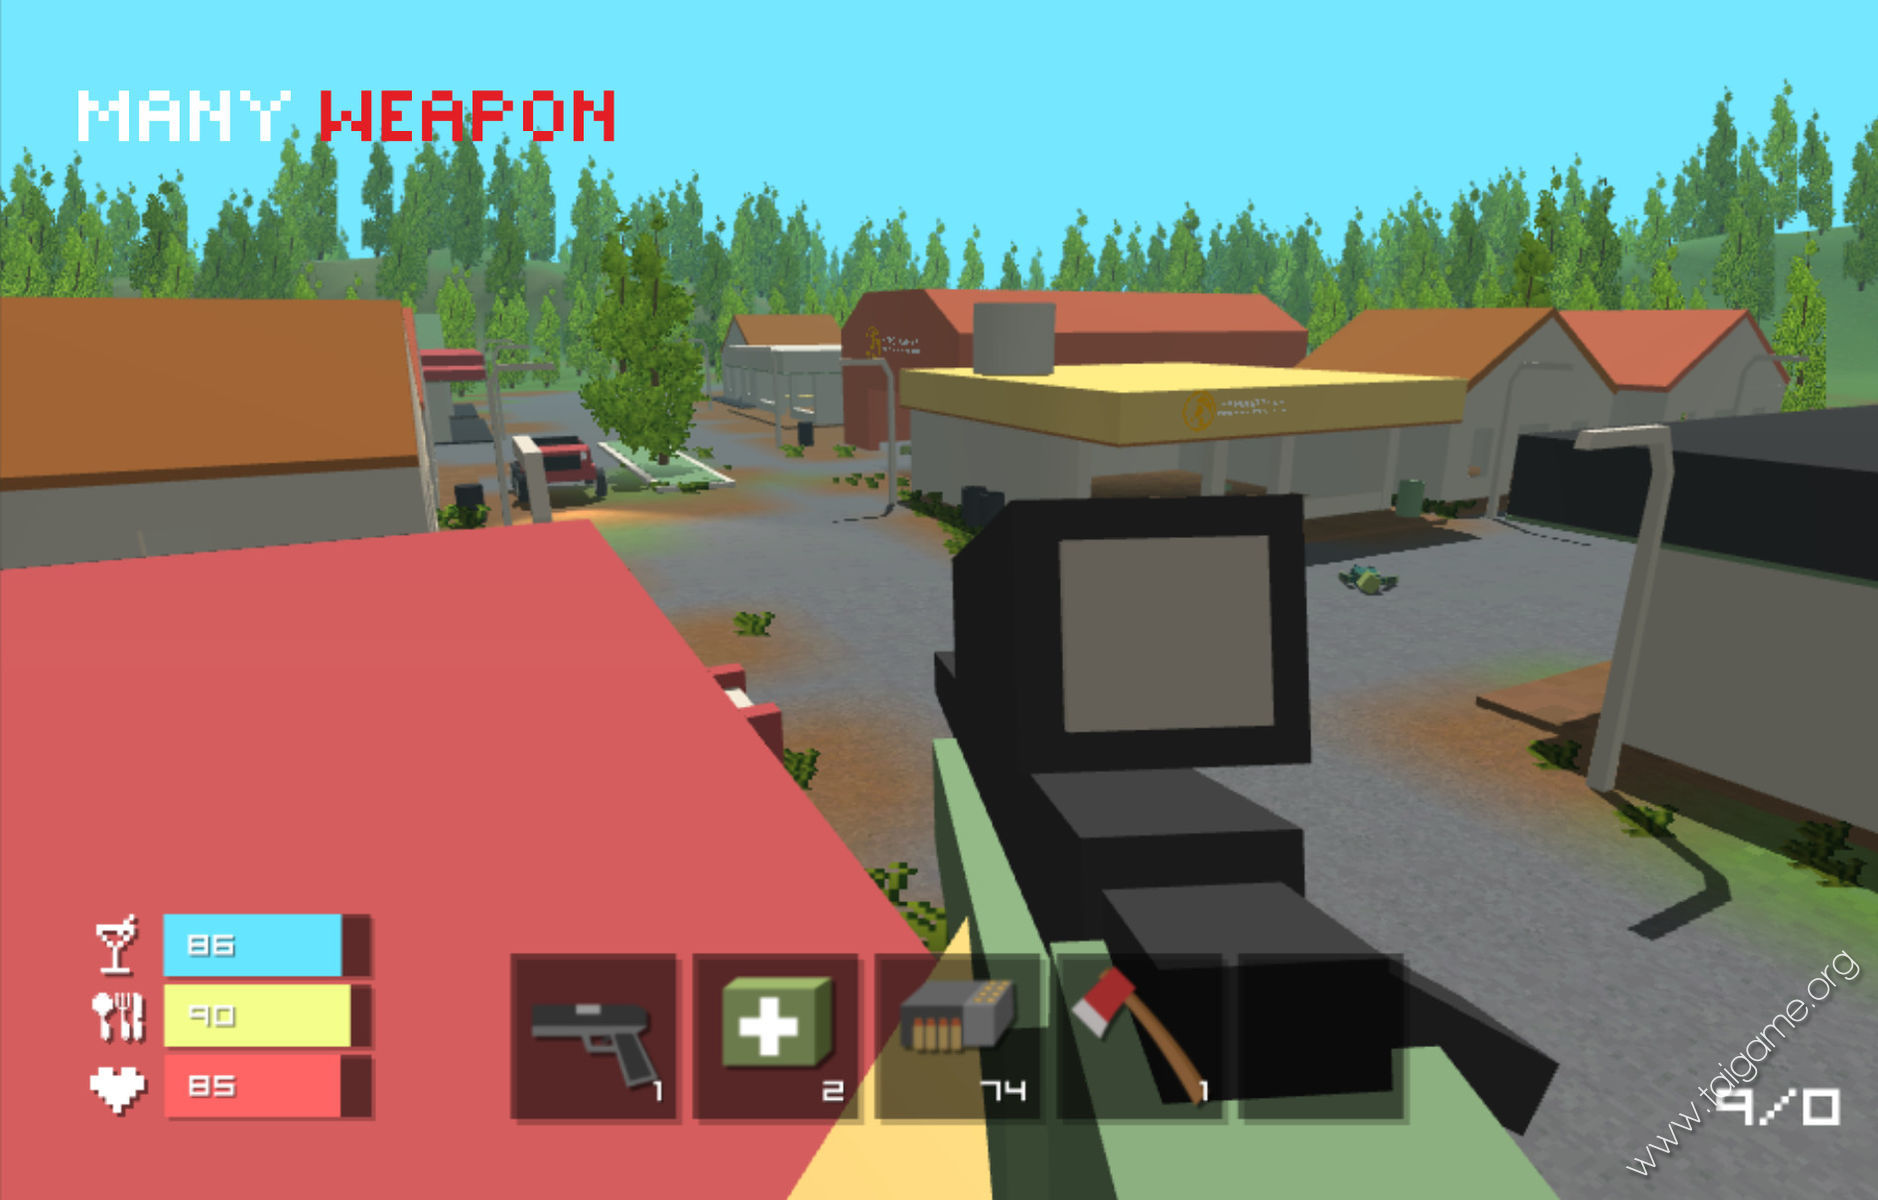 Survival craft game download for pc mixereal for Survival craft free download pc